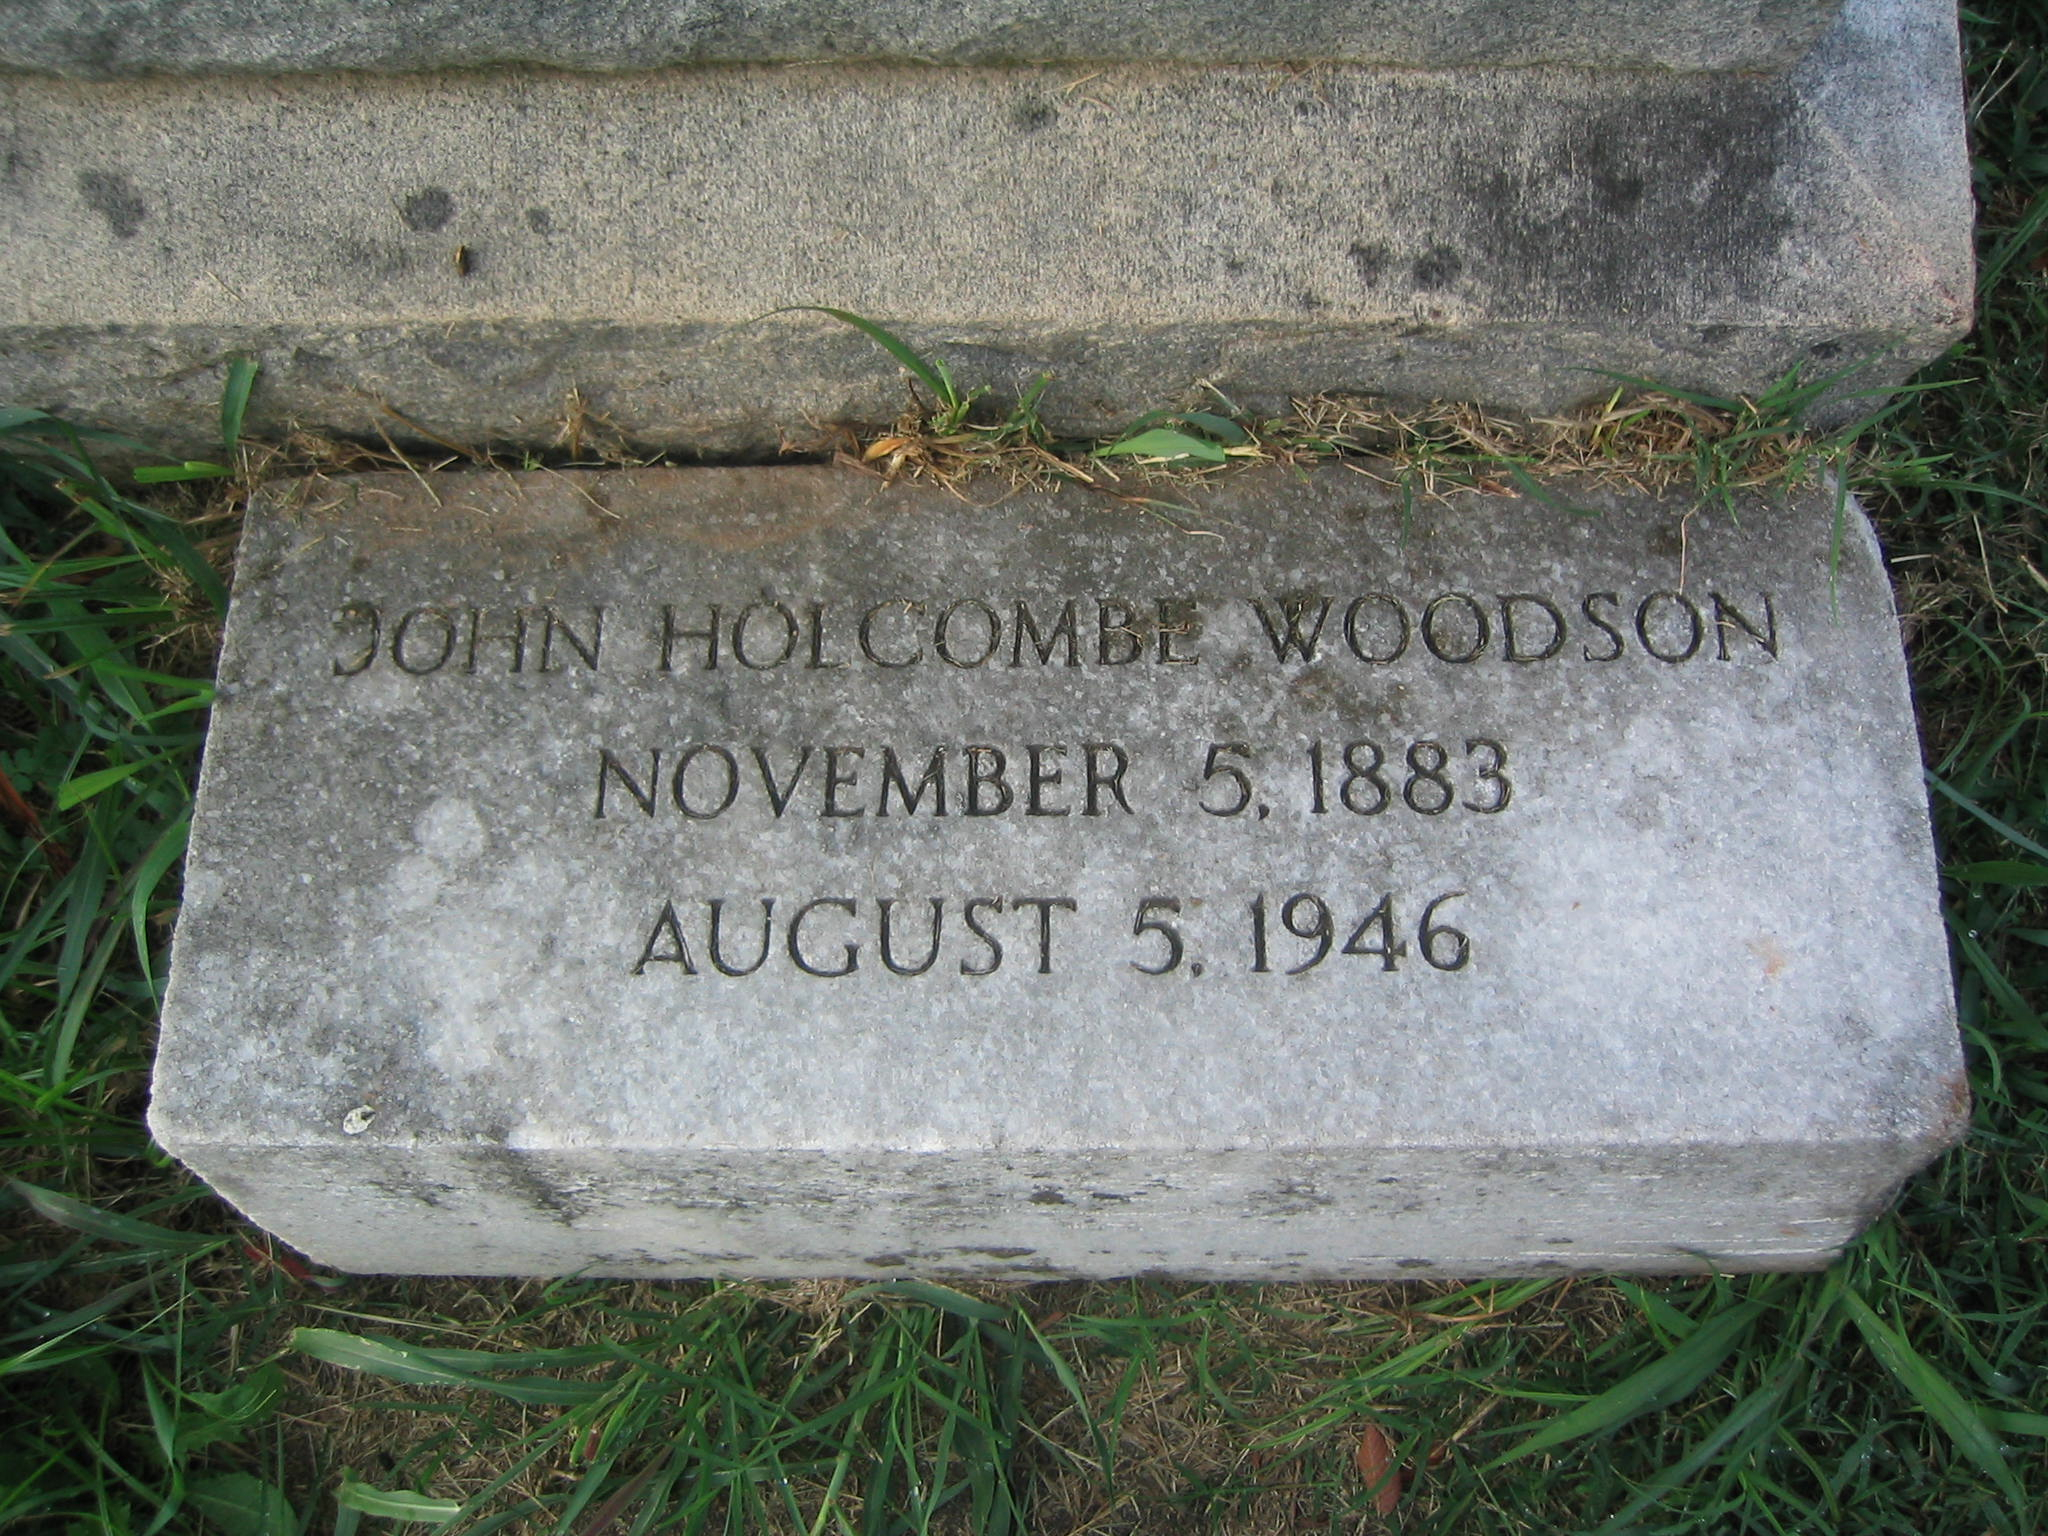 Sergeant John Holcombe Woodson   Southern Railway Police Department, Railroad Police